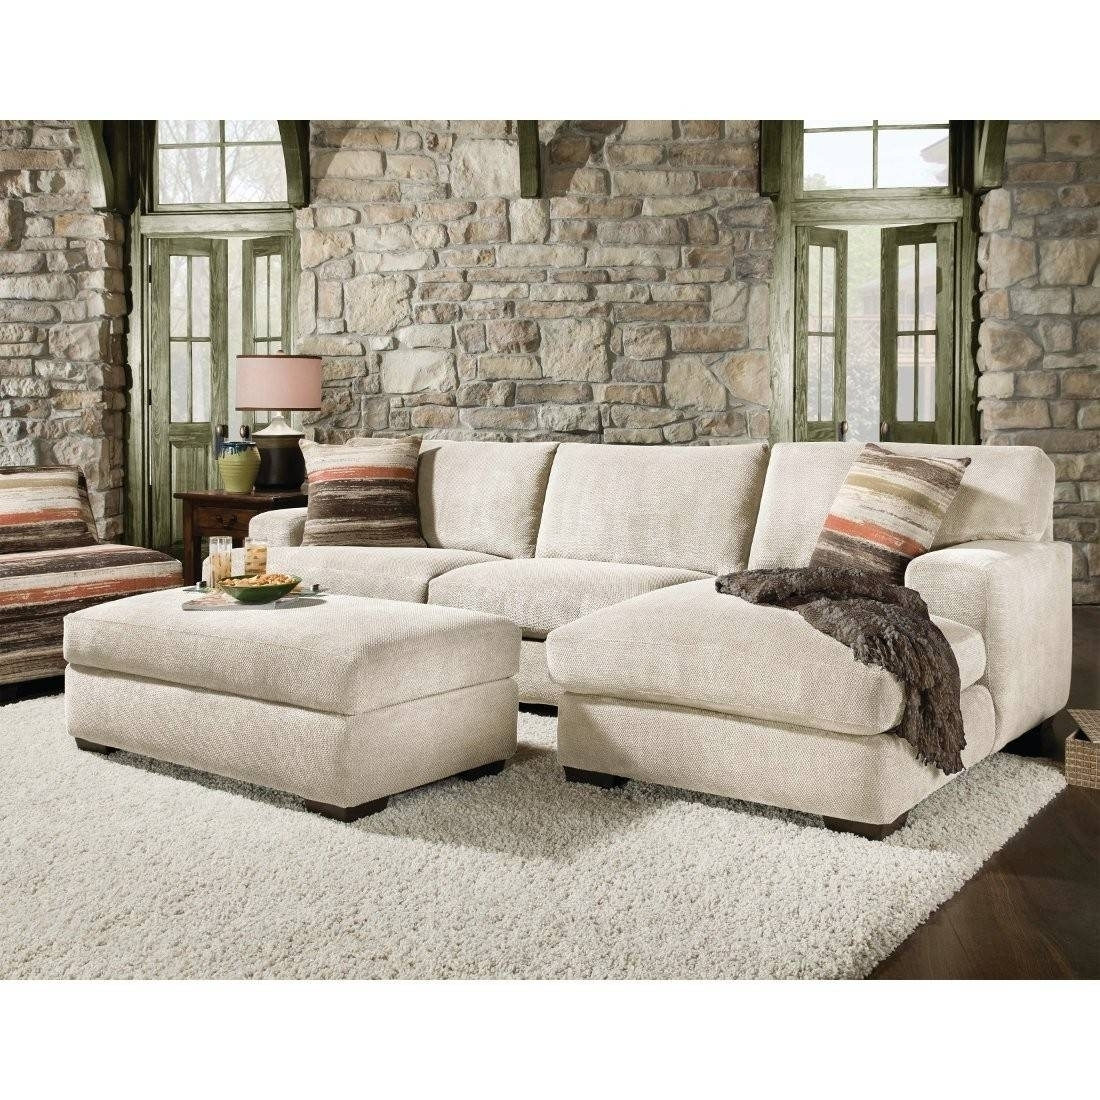 Scaled Down Sectional Sofas • Sectional Sofa With Regard To Down Sectional Sofas (View 8 of 10)